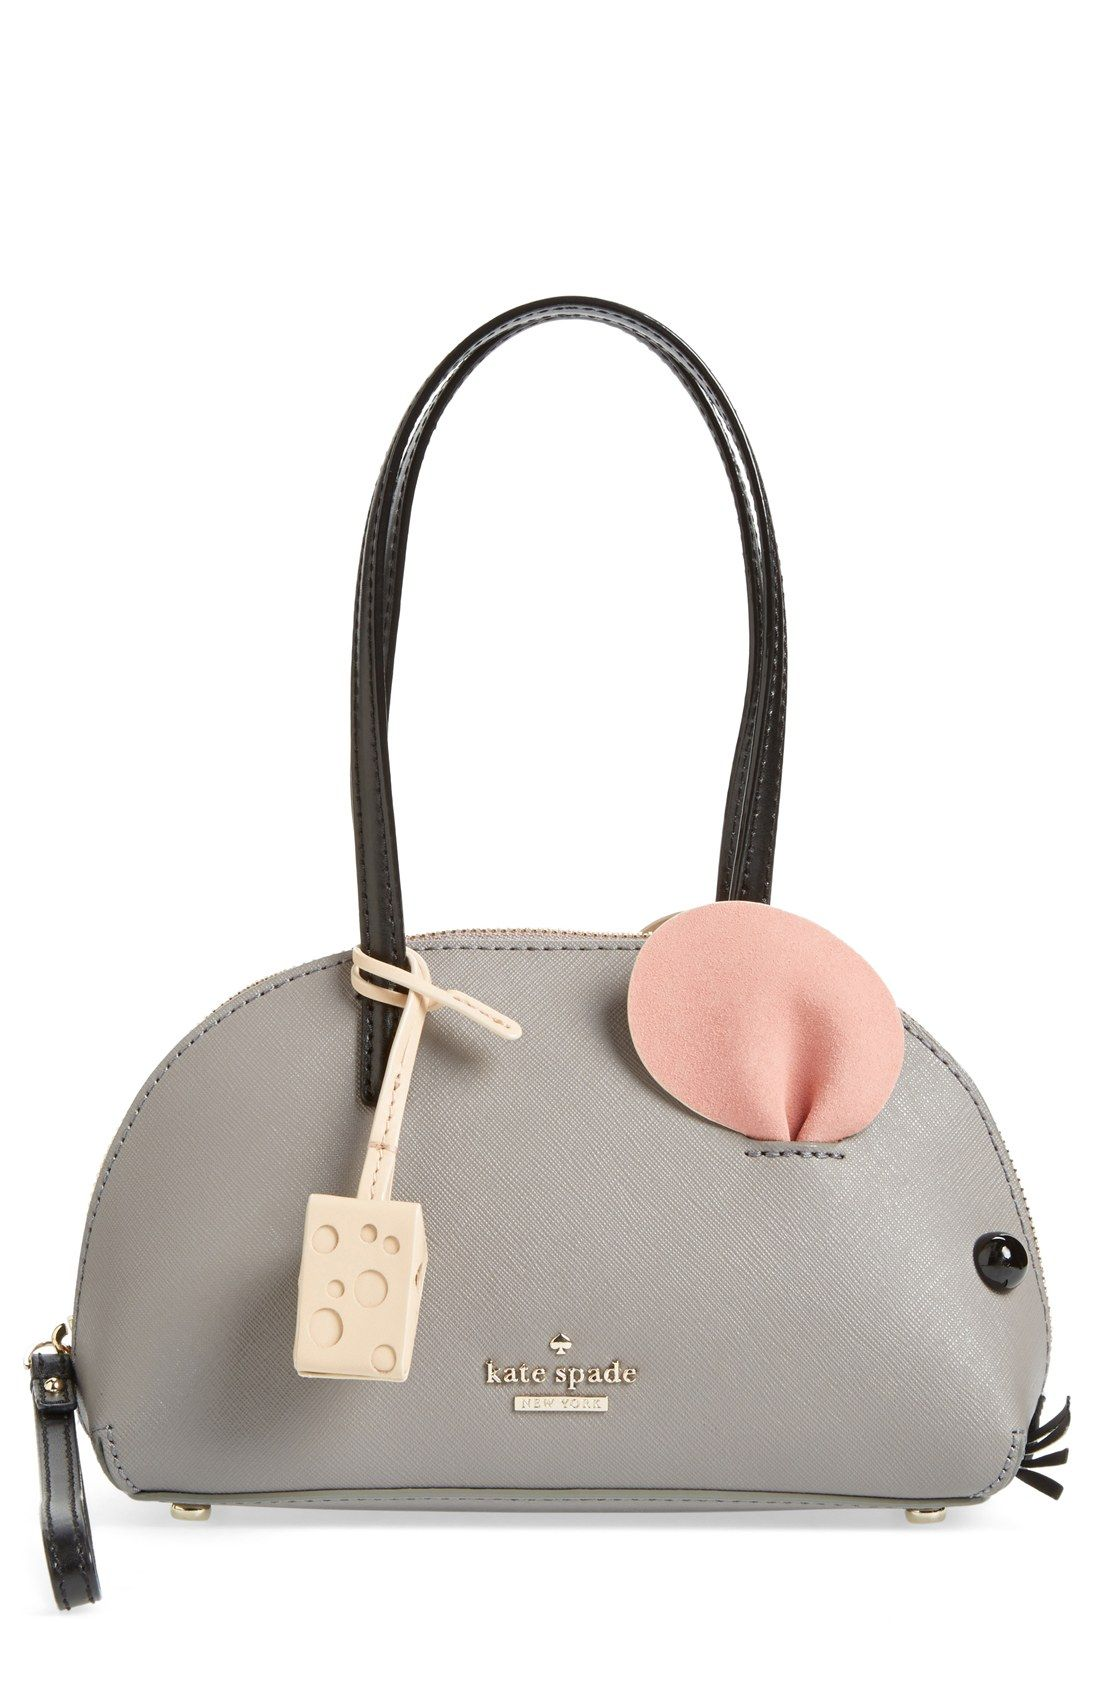 b95f1f16f569 kate spade new york 'cat's meow' mouse bag | Crazy in 2019 | Bags ...